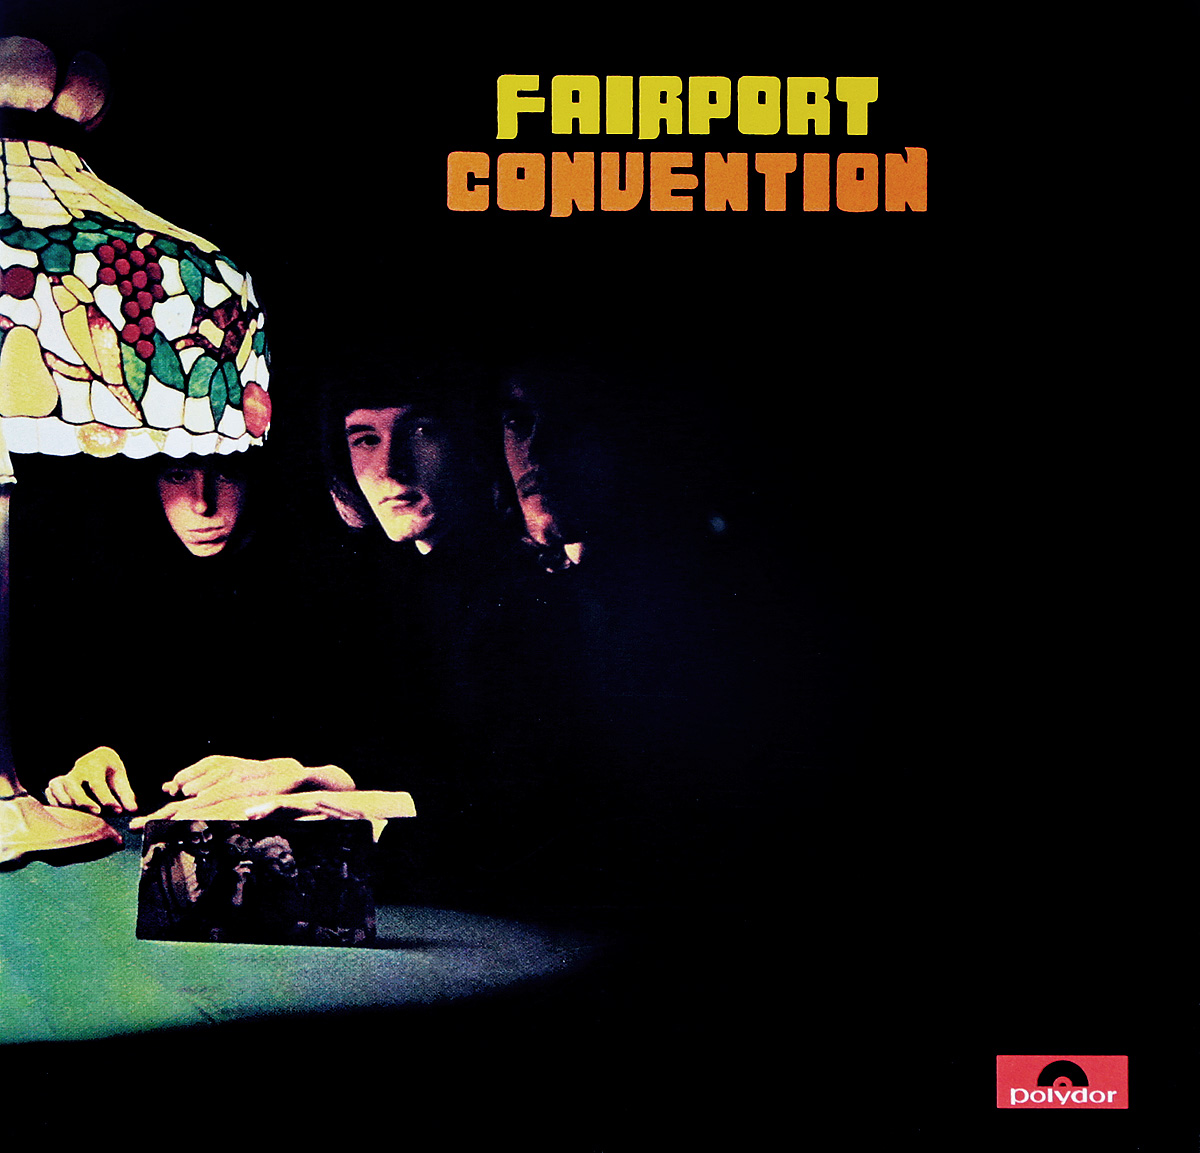 Fairport Convention Fairport Convention. Fairport Convention dragworld convention uk weekend